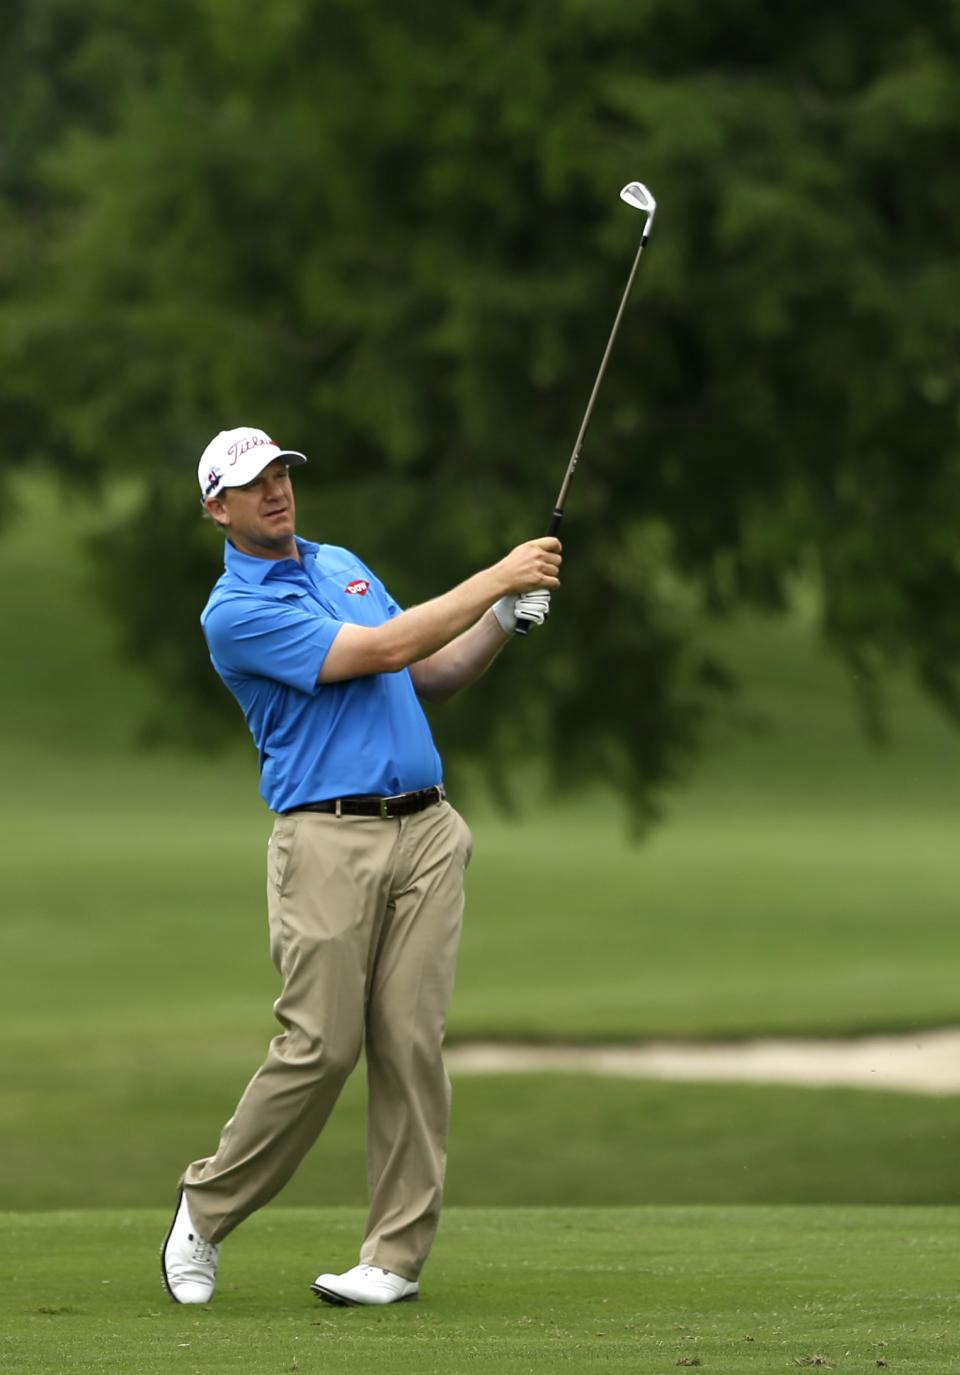 Tom Gillis follows his shot off the fourth fairway during the second round of the Byron Nelson Championship golf tournament Friday, May 17, 2013, in Irving, Texas. (AP Photo/Tony Gutierrez)